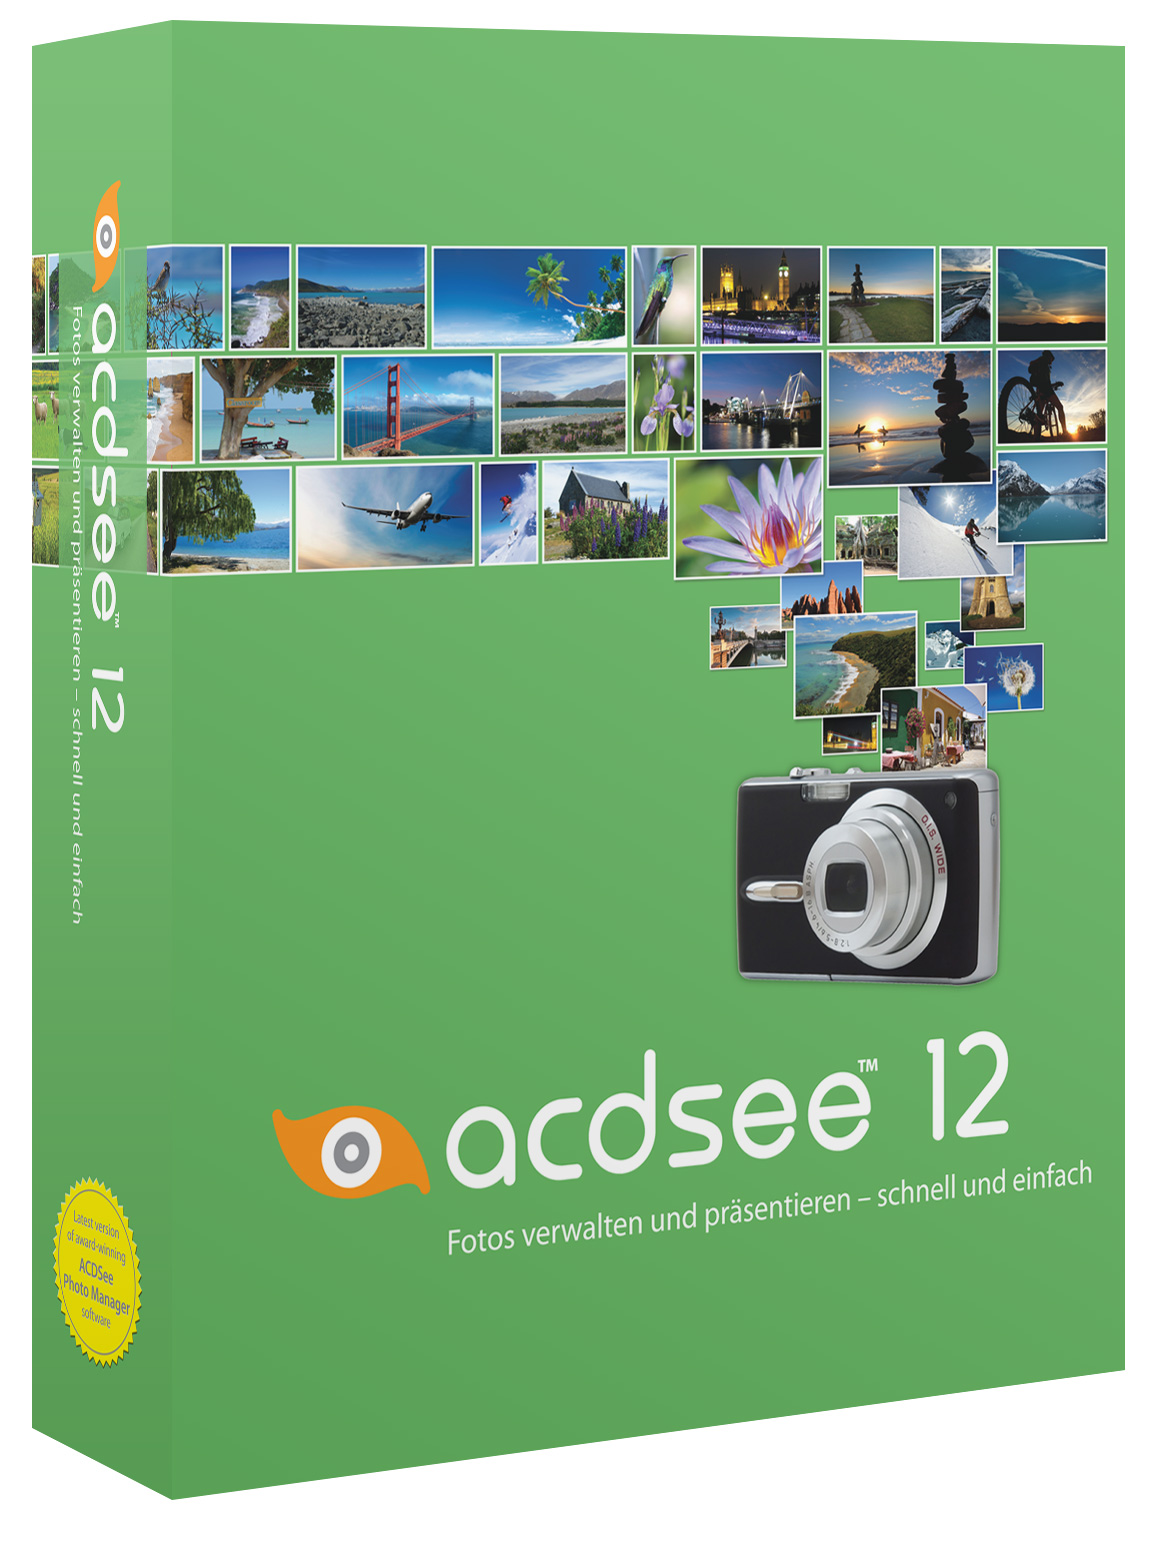 Acdsee photo managerv12.0 build 344 final serial